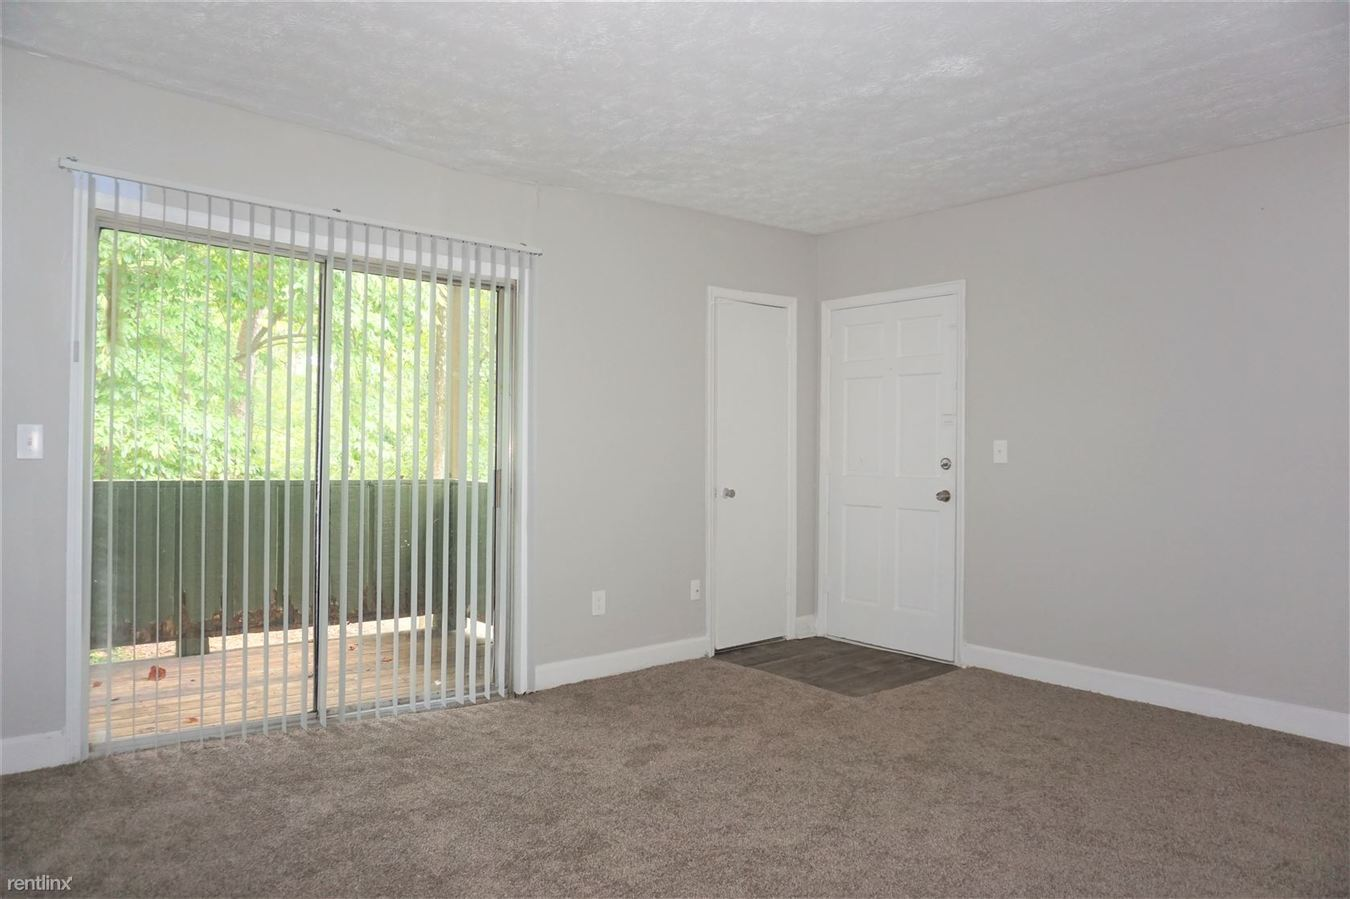 2 Bedrooms 1 Bathroom Apartment for rent at The Pines At Lawrenceville Apartments in Decatur, GA